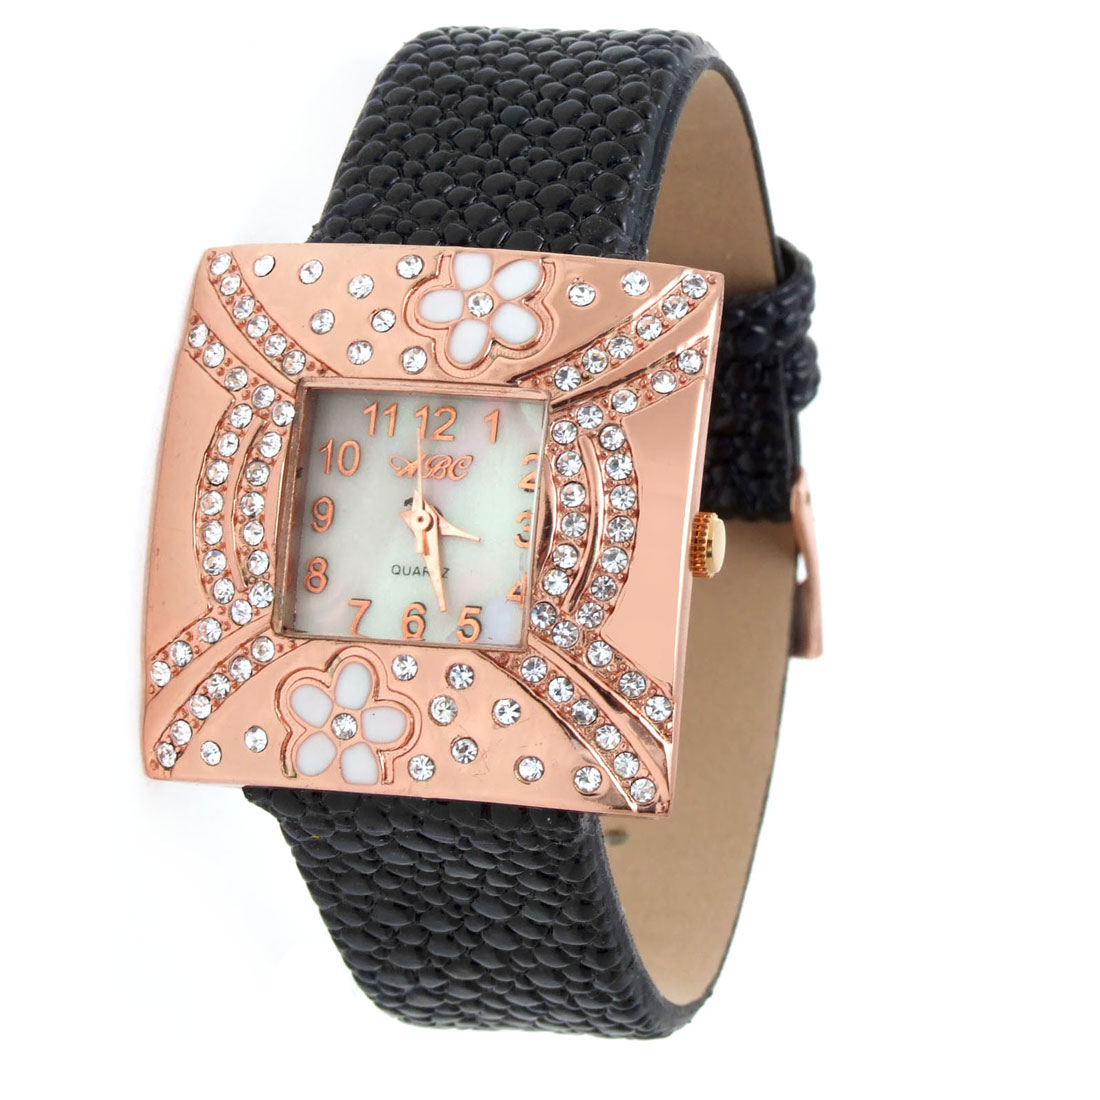 Fashion Jewelry Black Faux Leather Strap Wrist Quartz Watch